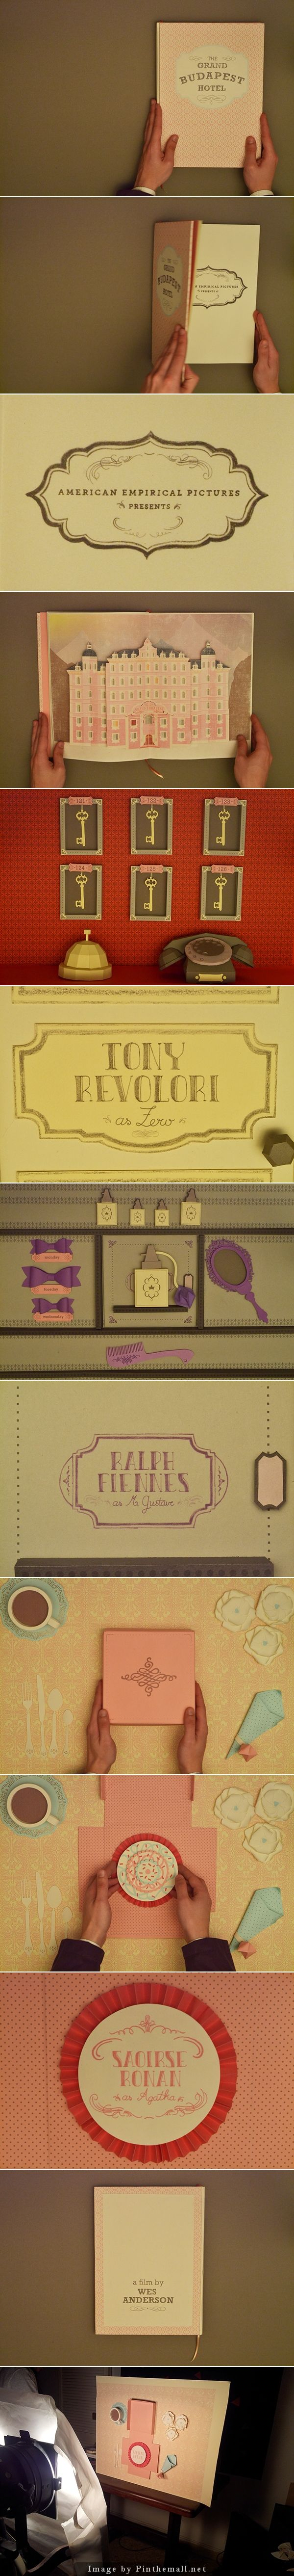 best ideas about hotel budapest grand budapest the grand budapest hotel by sabrina giselle acevedo